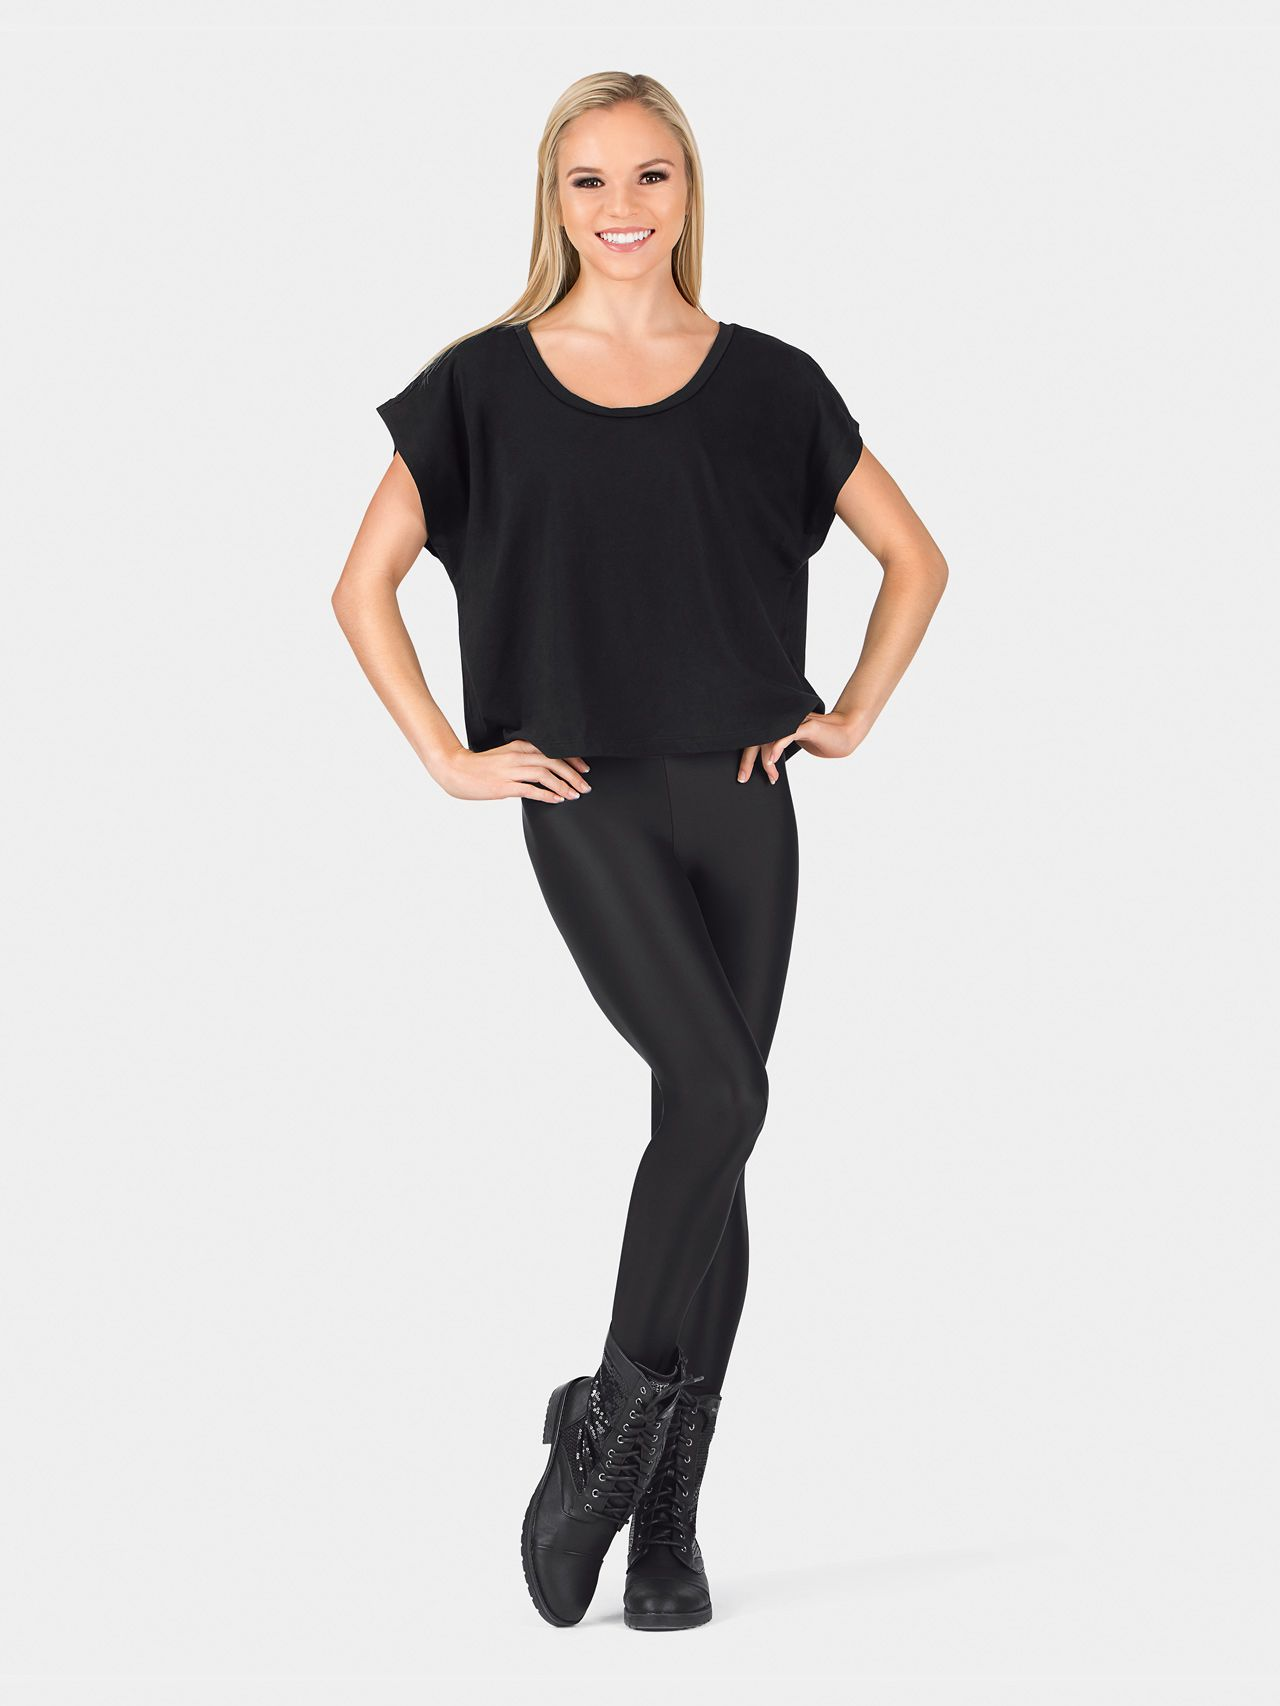 Free Shipping - High Waist Legging by NATALIE